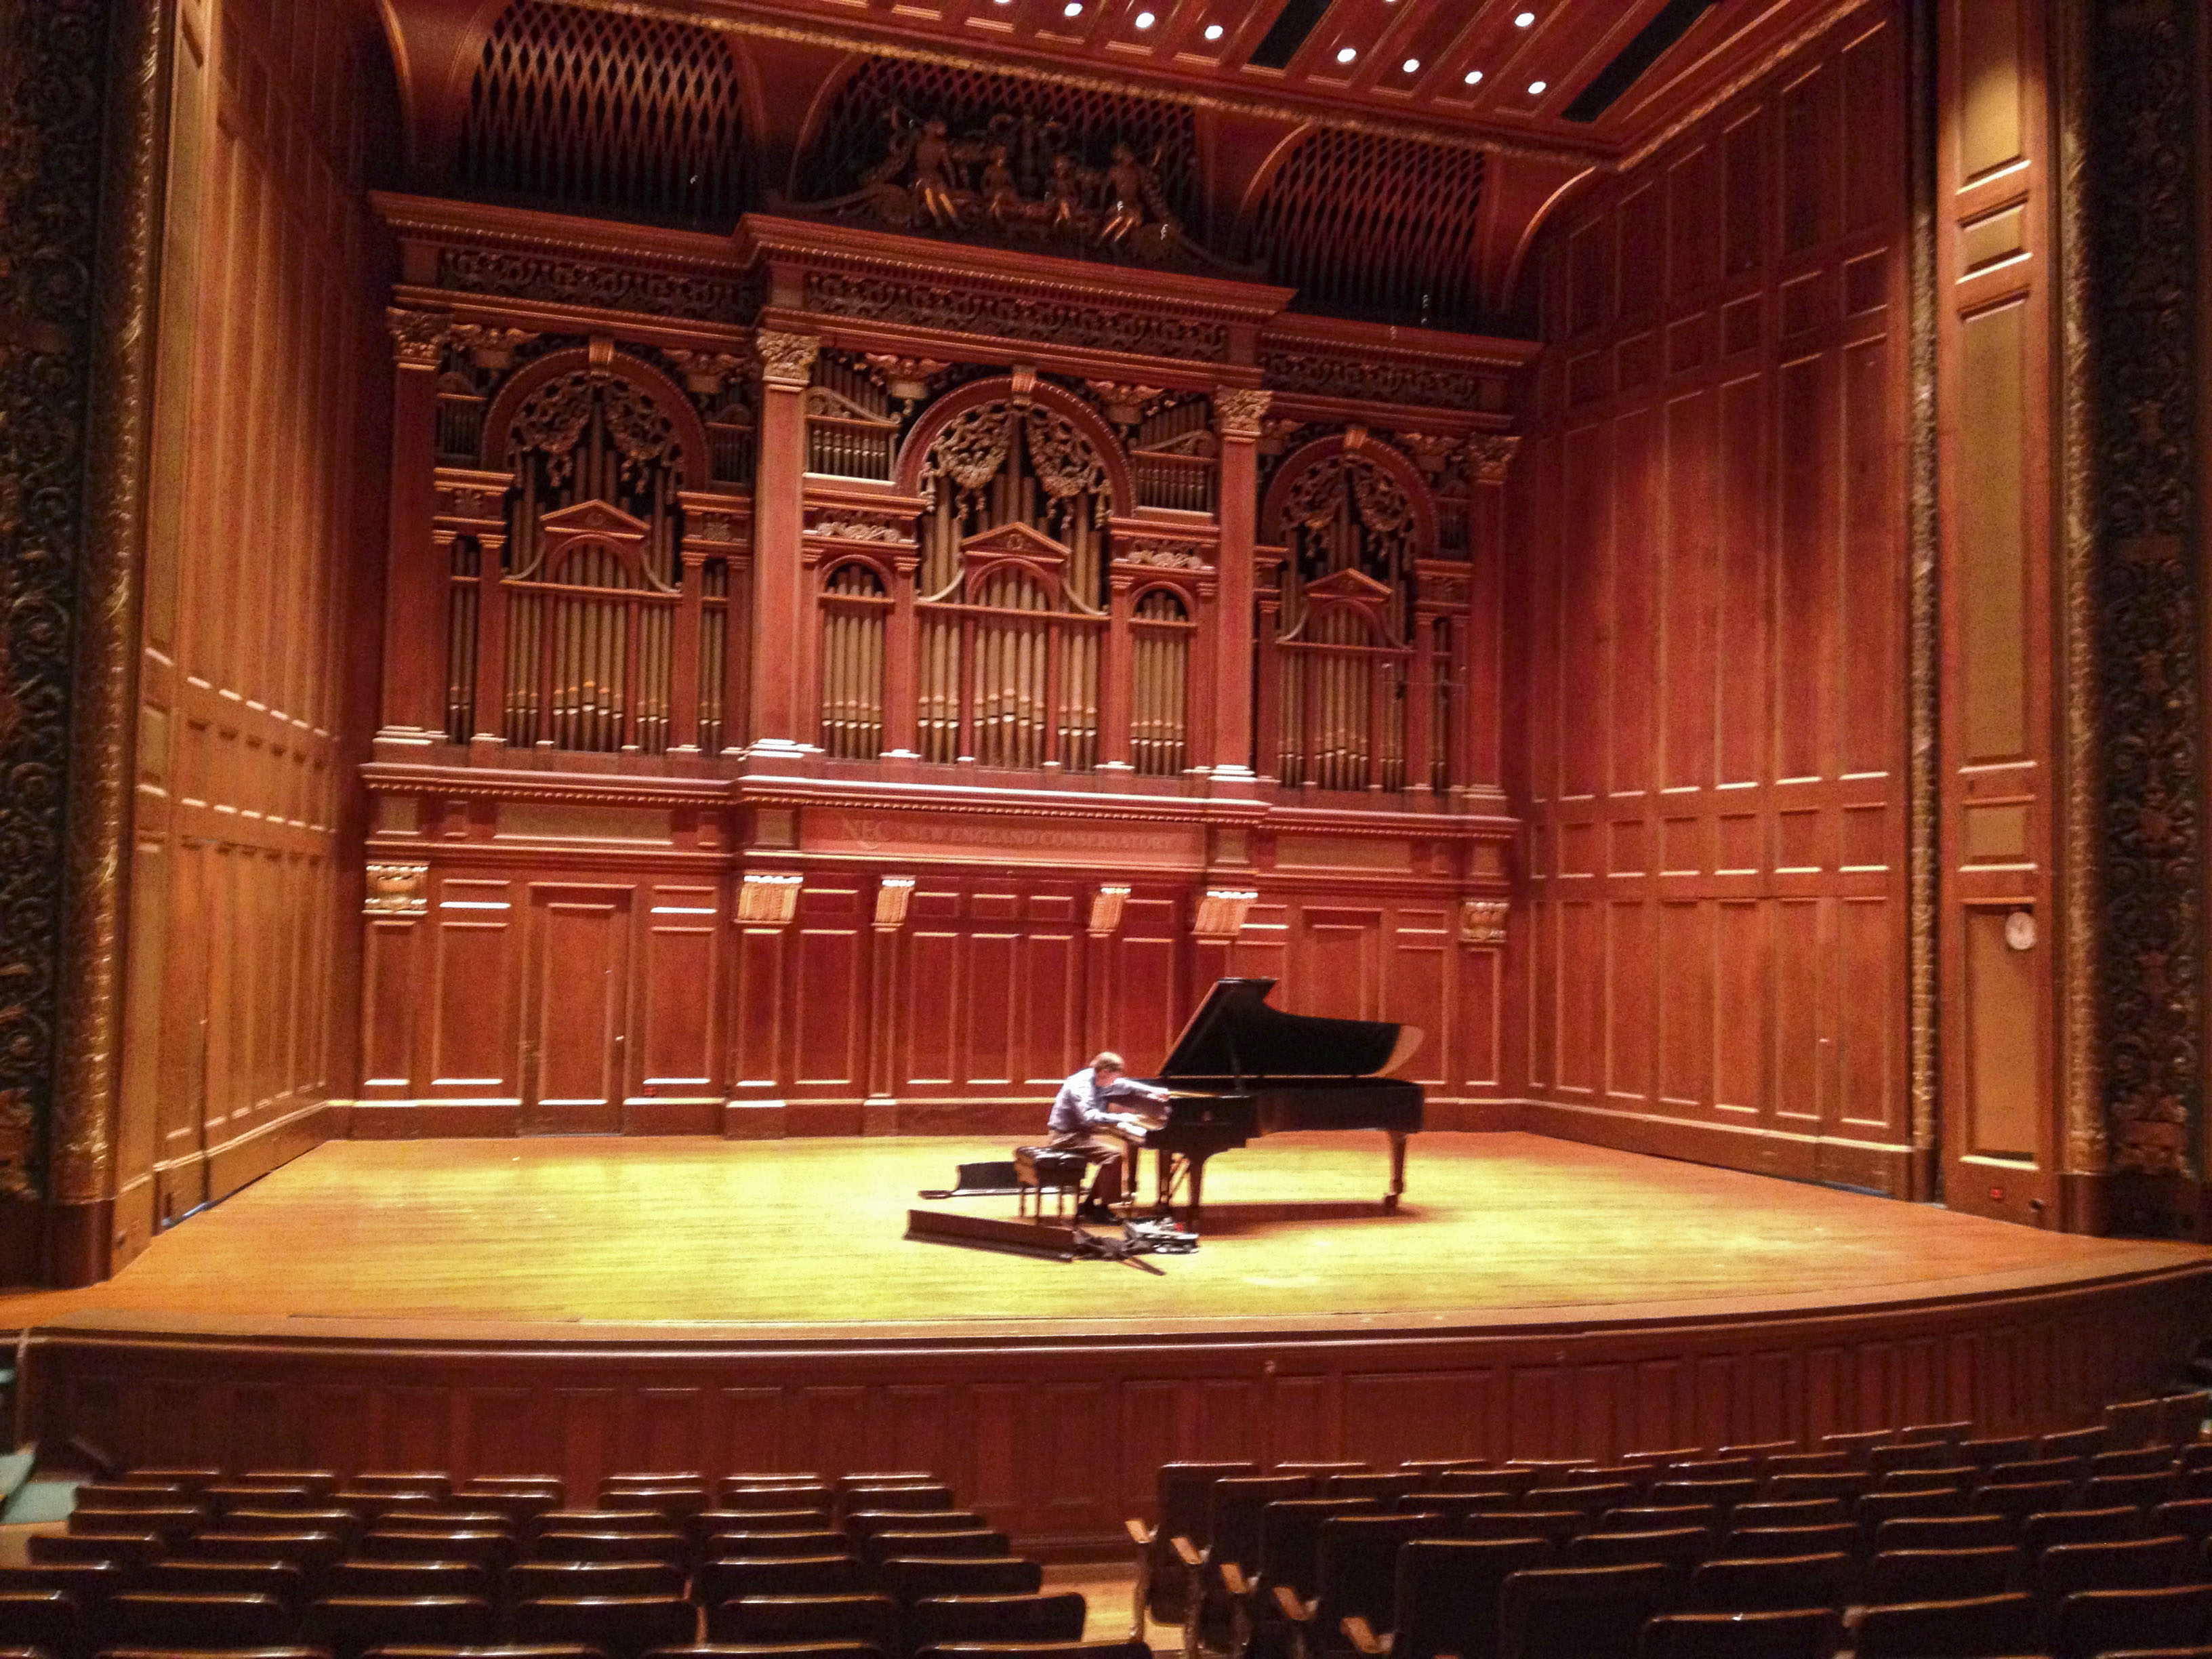 March 29, 2013 -- A piano tuner adjusts the piano at Jordan Hall at the New England Conservatory in preparation for a concert that evening. Photo by Poncie Rutsch.